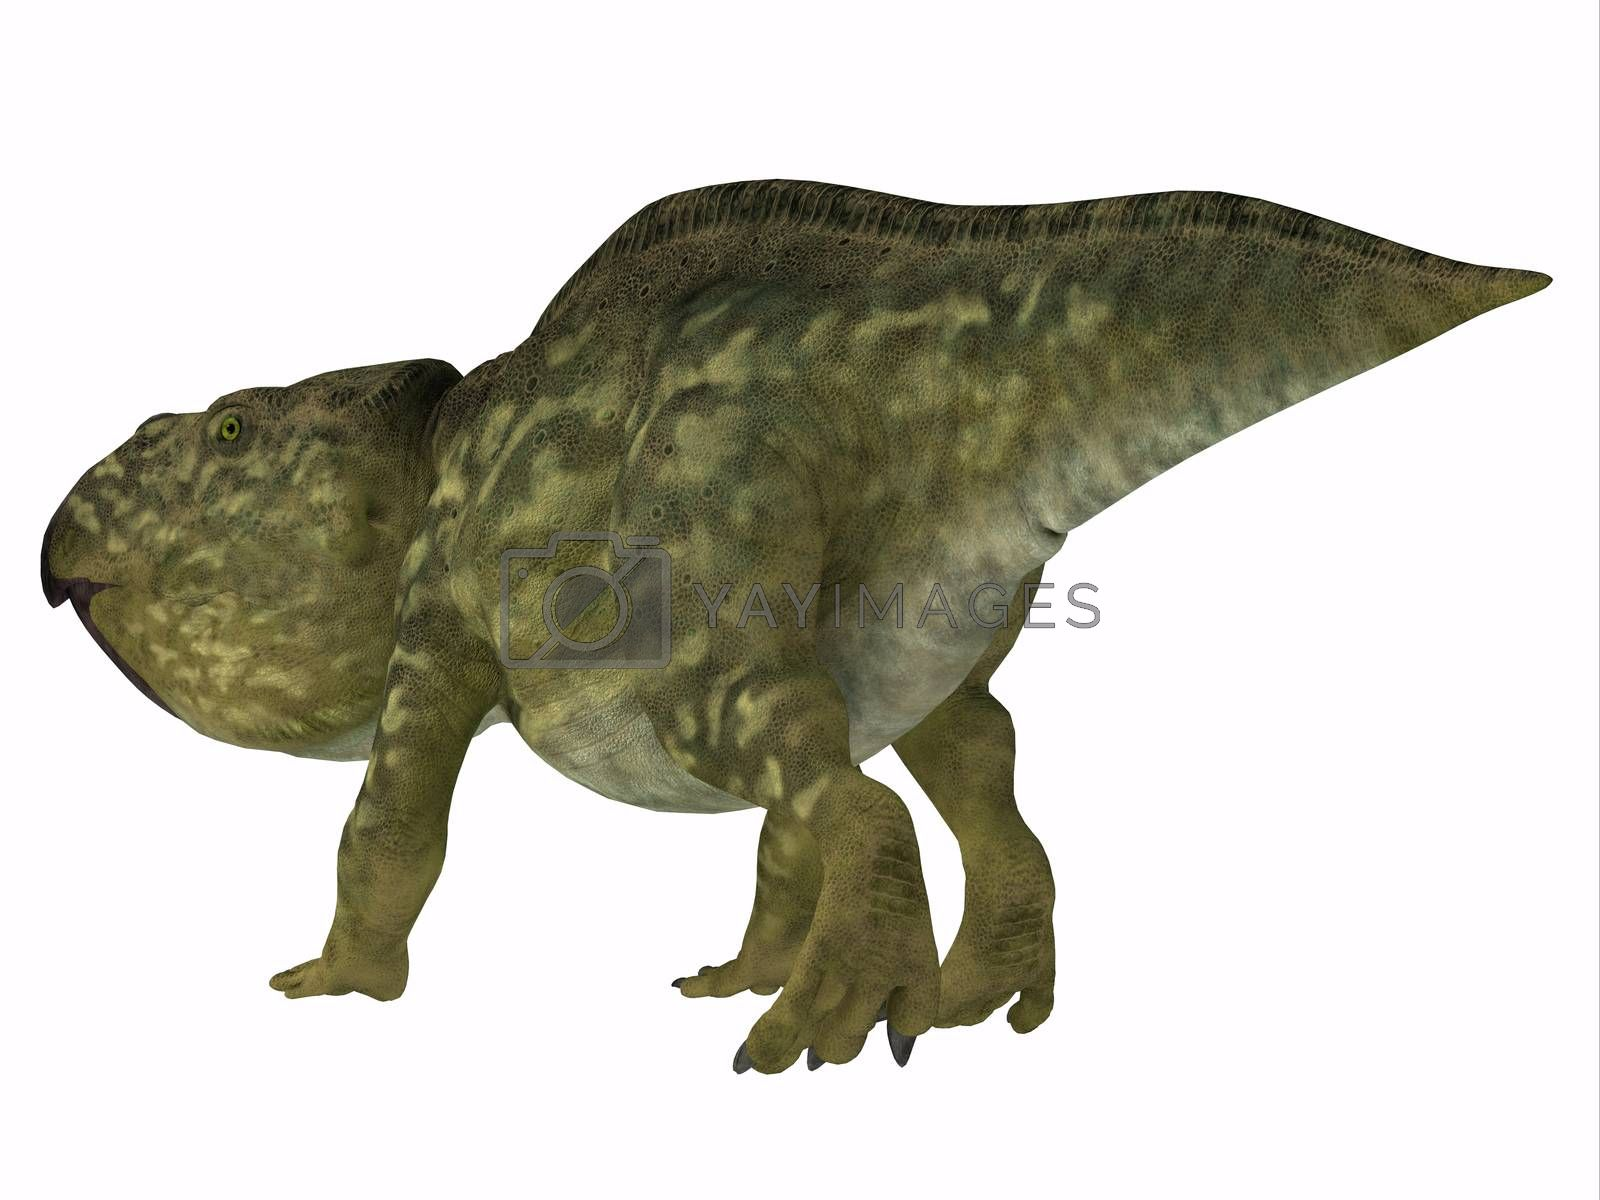 Udanoceratops was a Ceratopsian herbivorous dinosaur that lived in Mongolia in the Cretaceous Period.